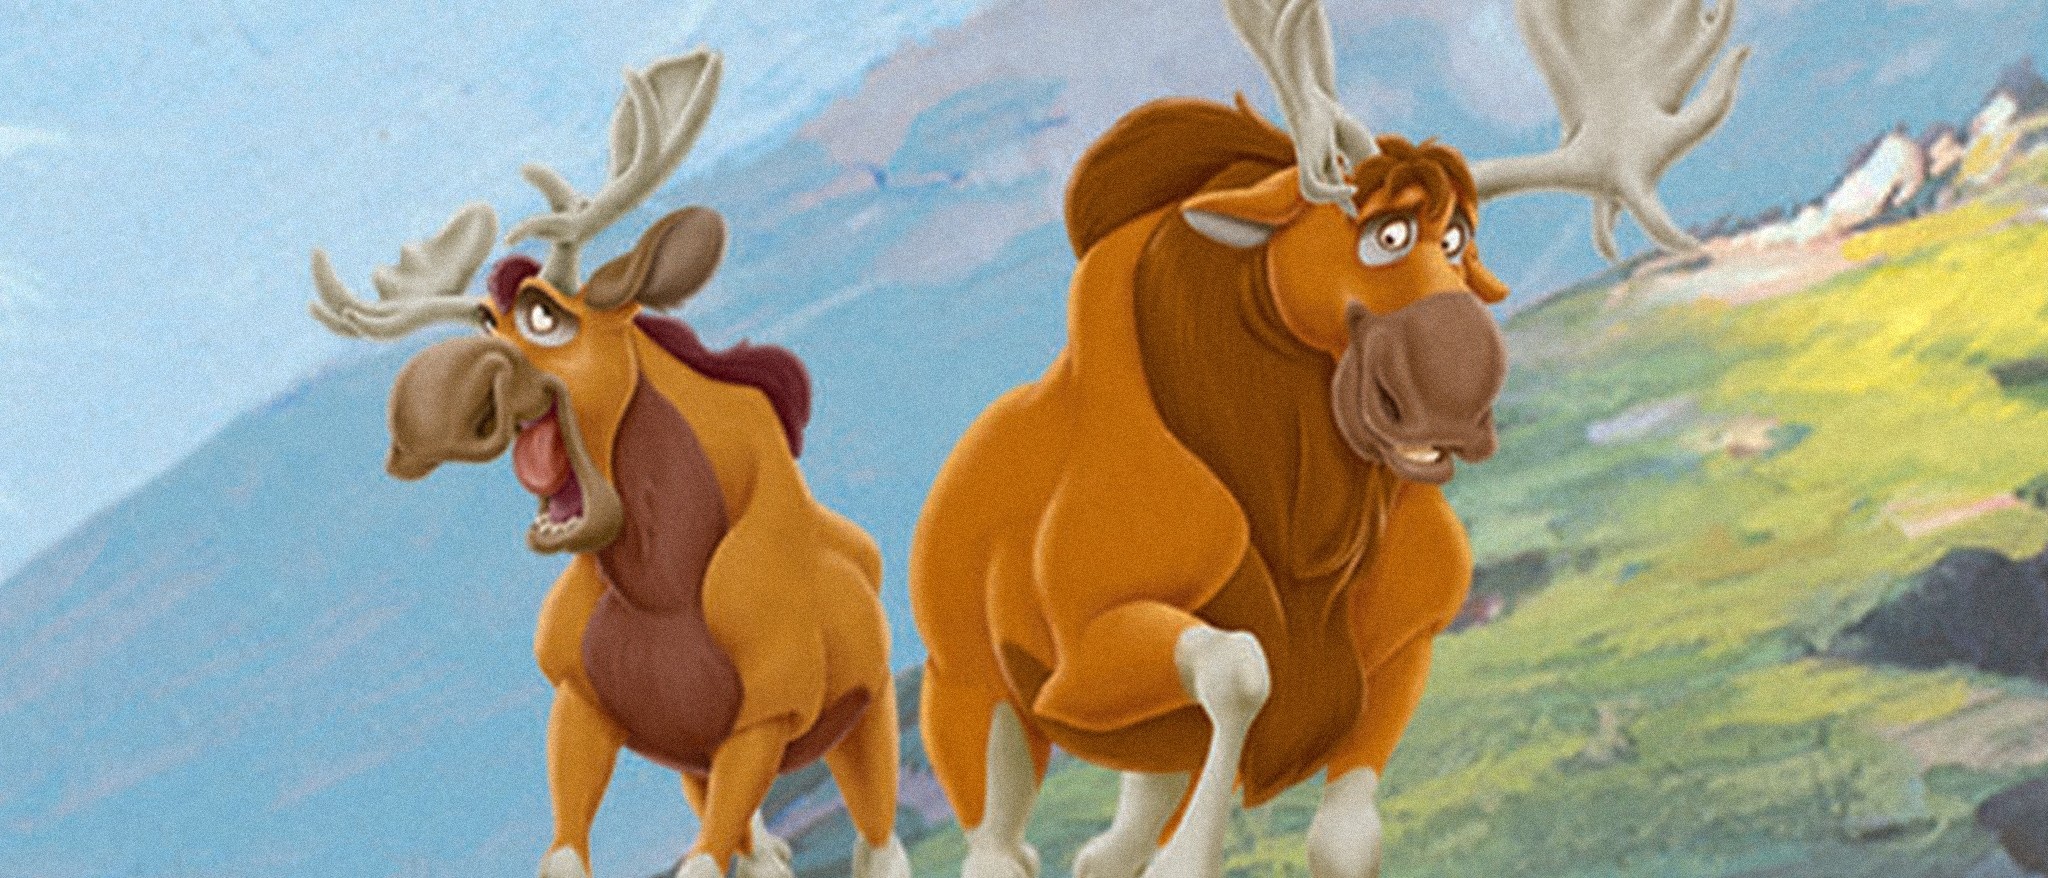 Sing Along Songs: Brother Bear - On My Way Hero